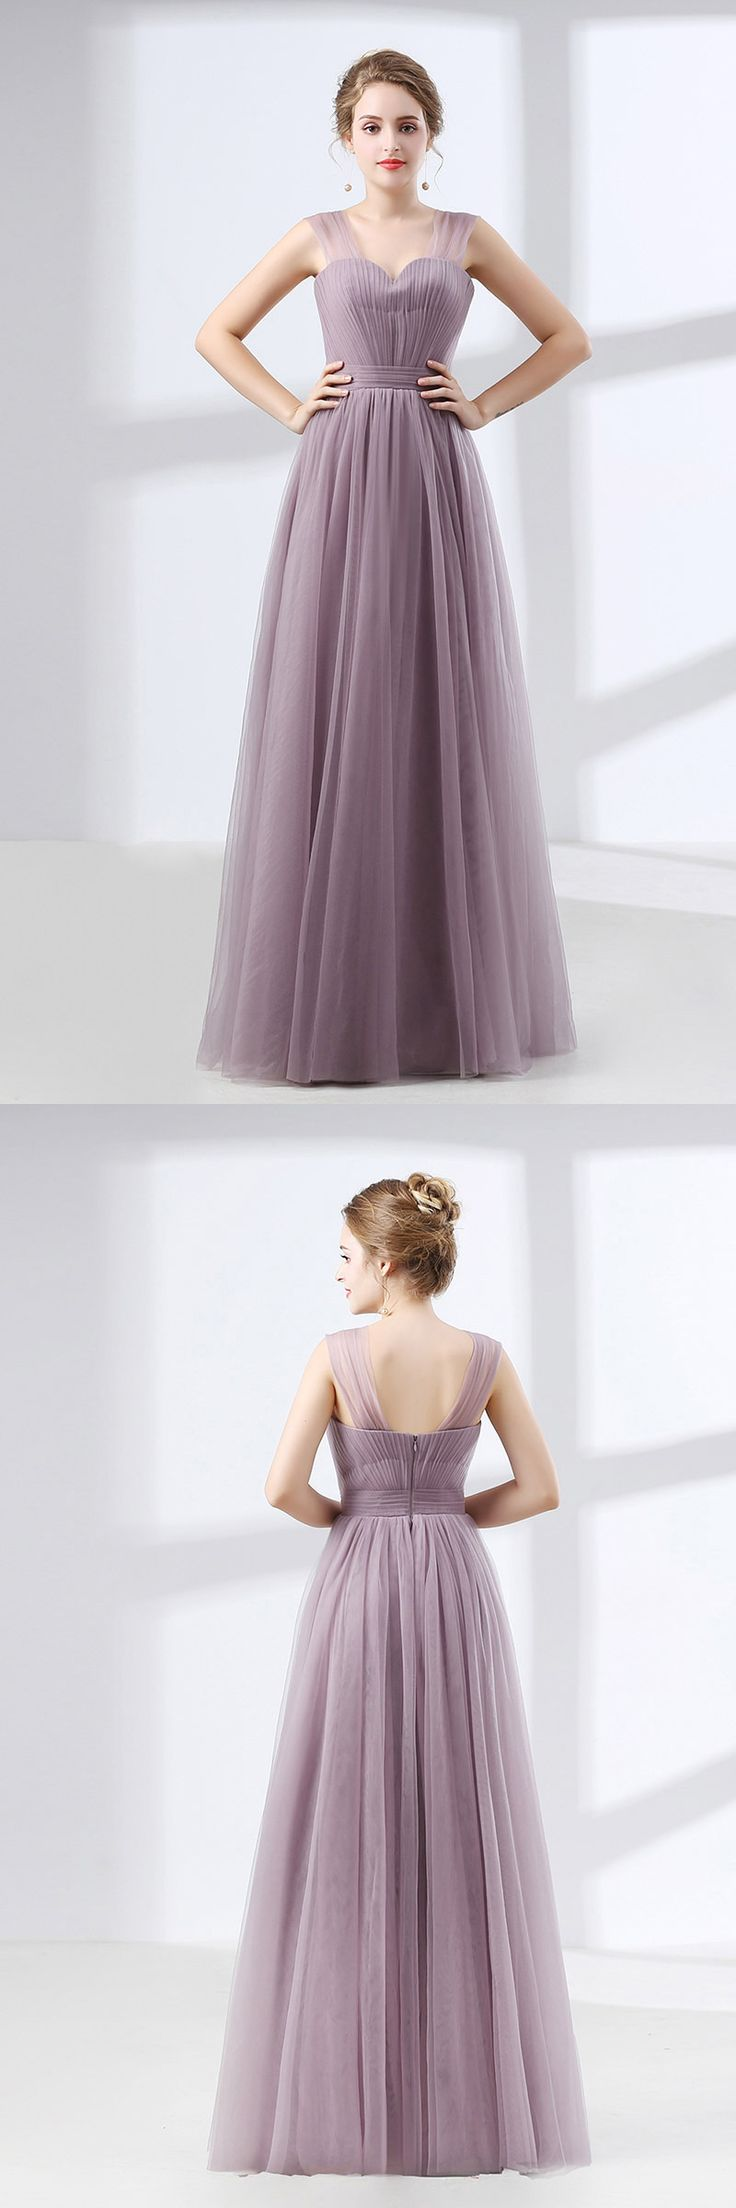 Only $99, Homecoming Dresses Cheap Tulle Long Homecoming Dress Dusty Lavender Under $100 #CH6632 at #GemGrace. View more special Special Occasion Dresses,Prom Dresses,Homecoming Dresses now? GemGrace is a solution for those who want to buy delicate gowns with affordable prices, a solution for those who have unique ideas about their gowns. 2018 new arrivals, shop now to get $10 off!